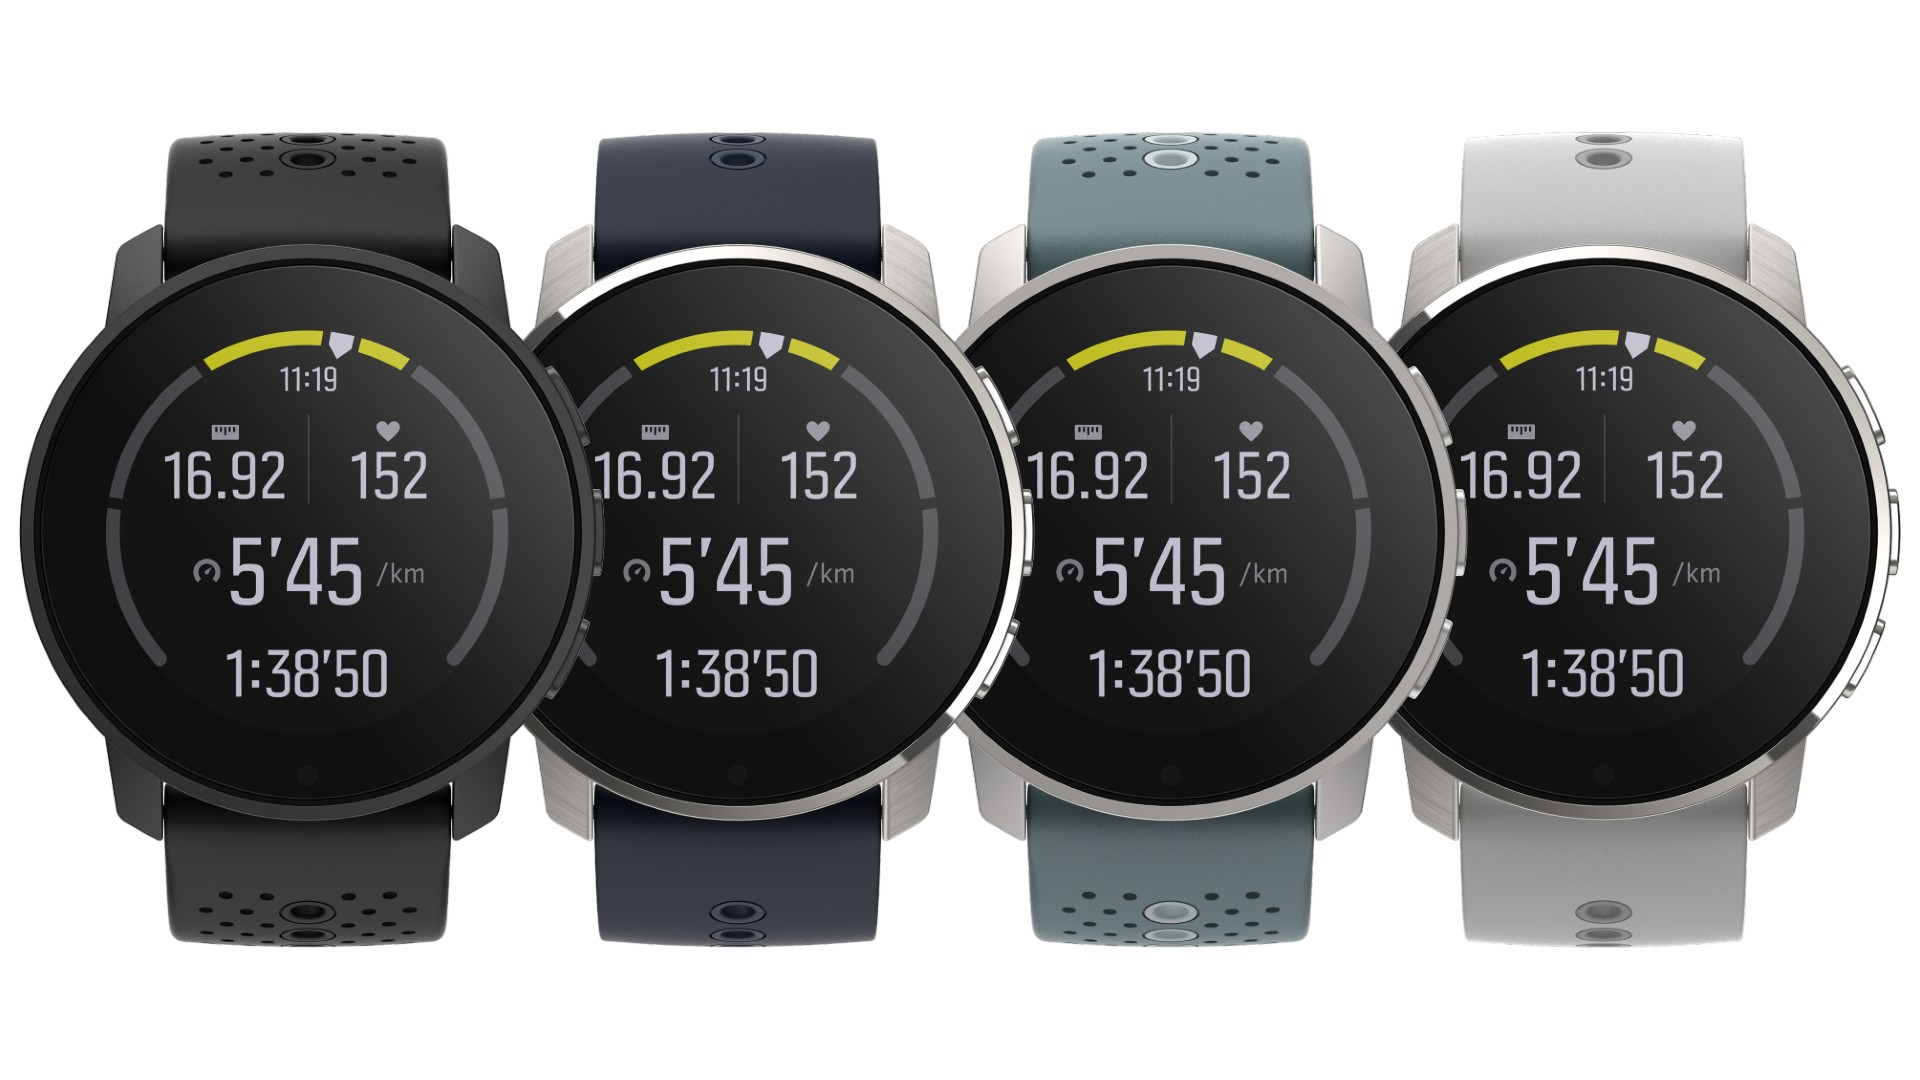 SUUNTO 9 Peak is the Thinnest, Smallest and Toughest Watch Ever by the Brand